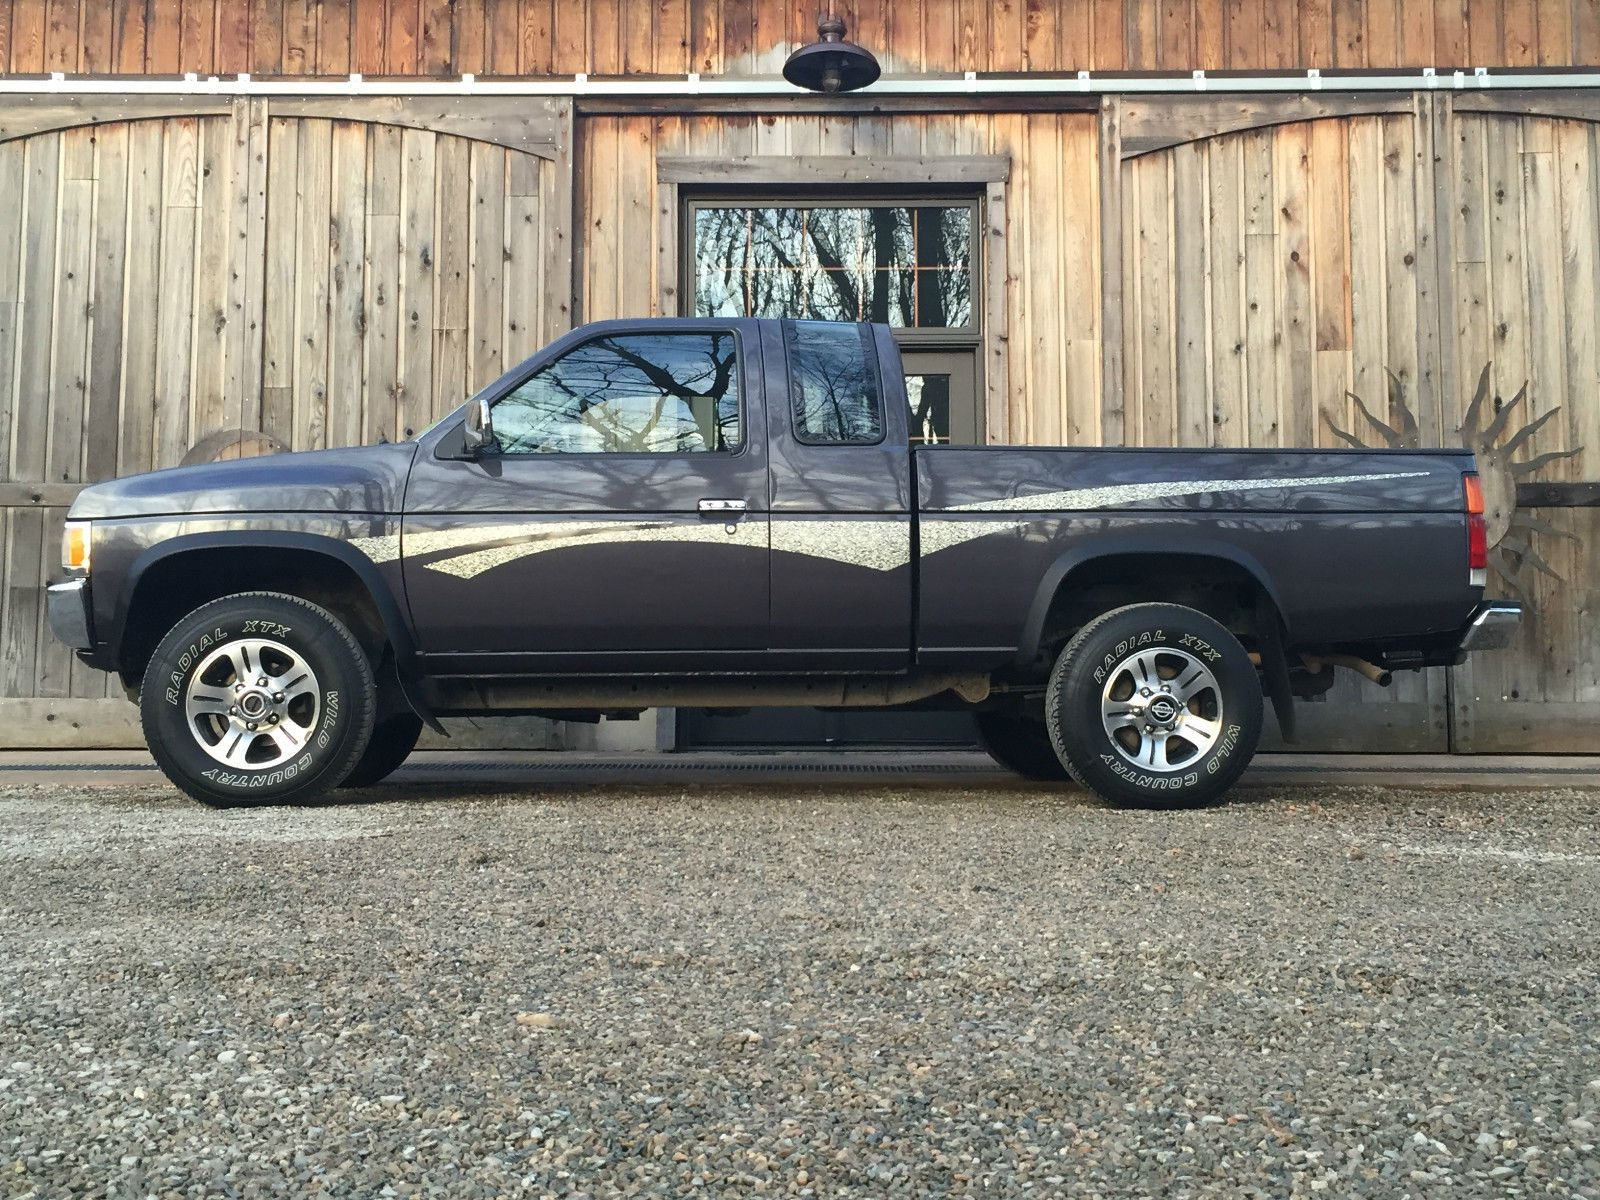 1995 Nissan Frontier Xe Hardbody Pickup 4x4 2 4l For Sale Nissan Hardbody Nissan Hardbody 4x4 Nissan